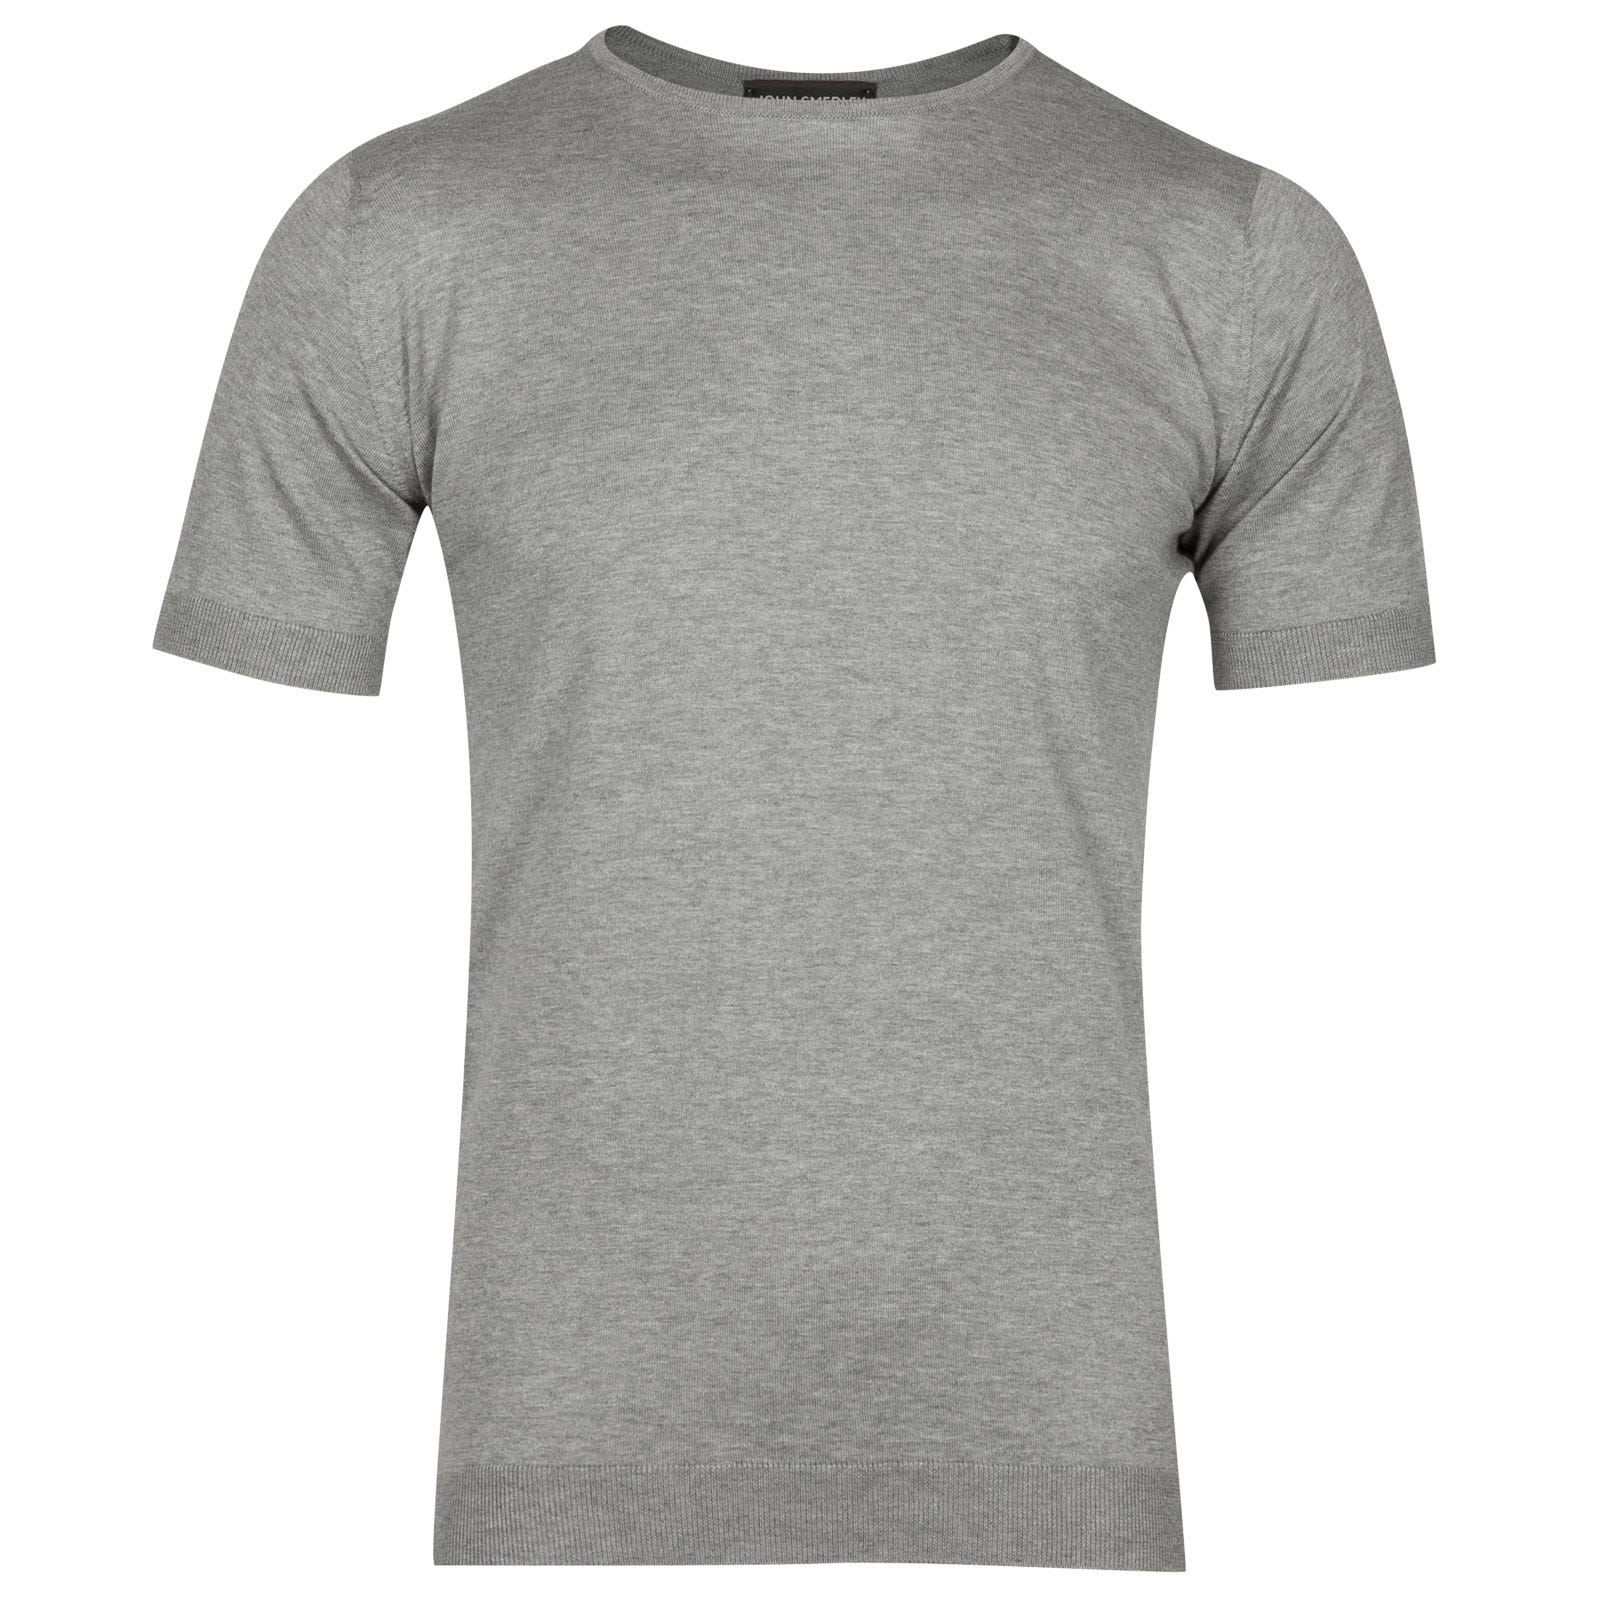 John Smedley belden Sea Island Cotton T-shirt in Silver-L